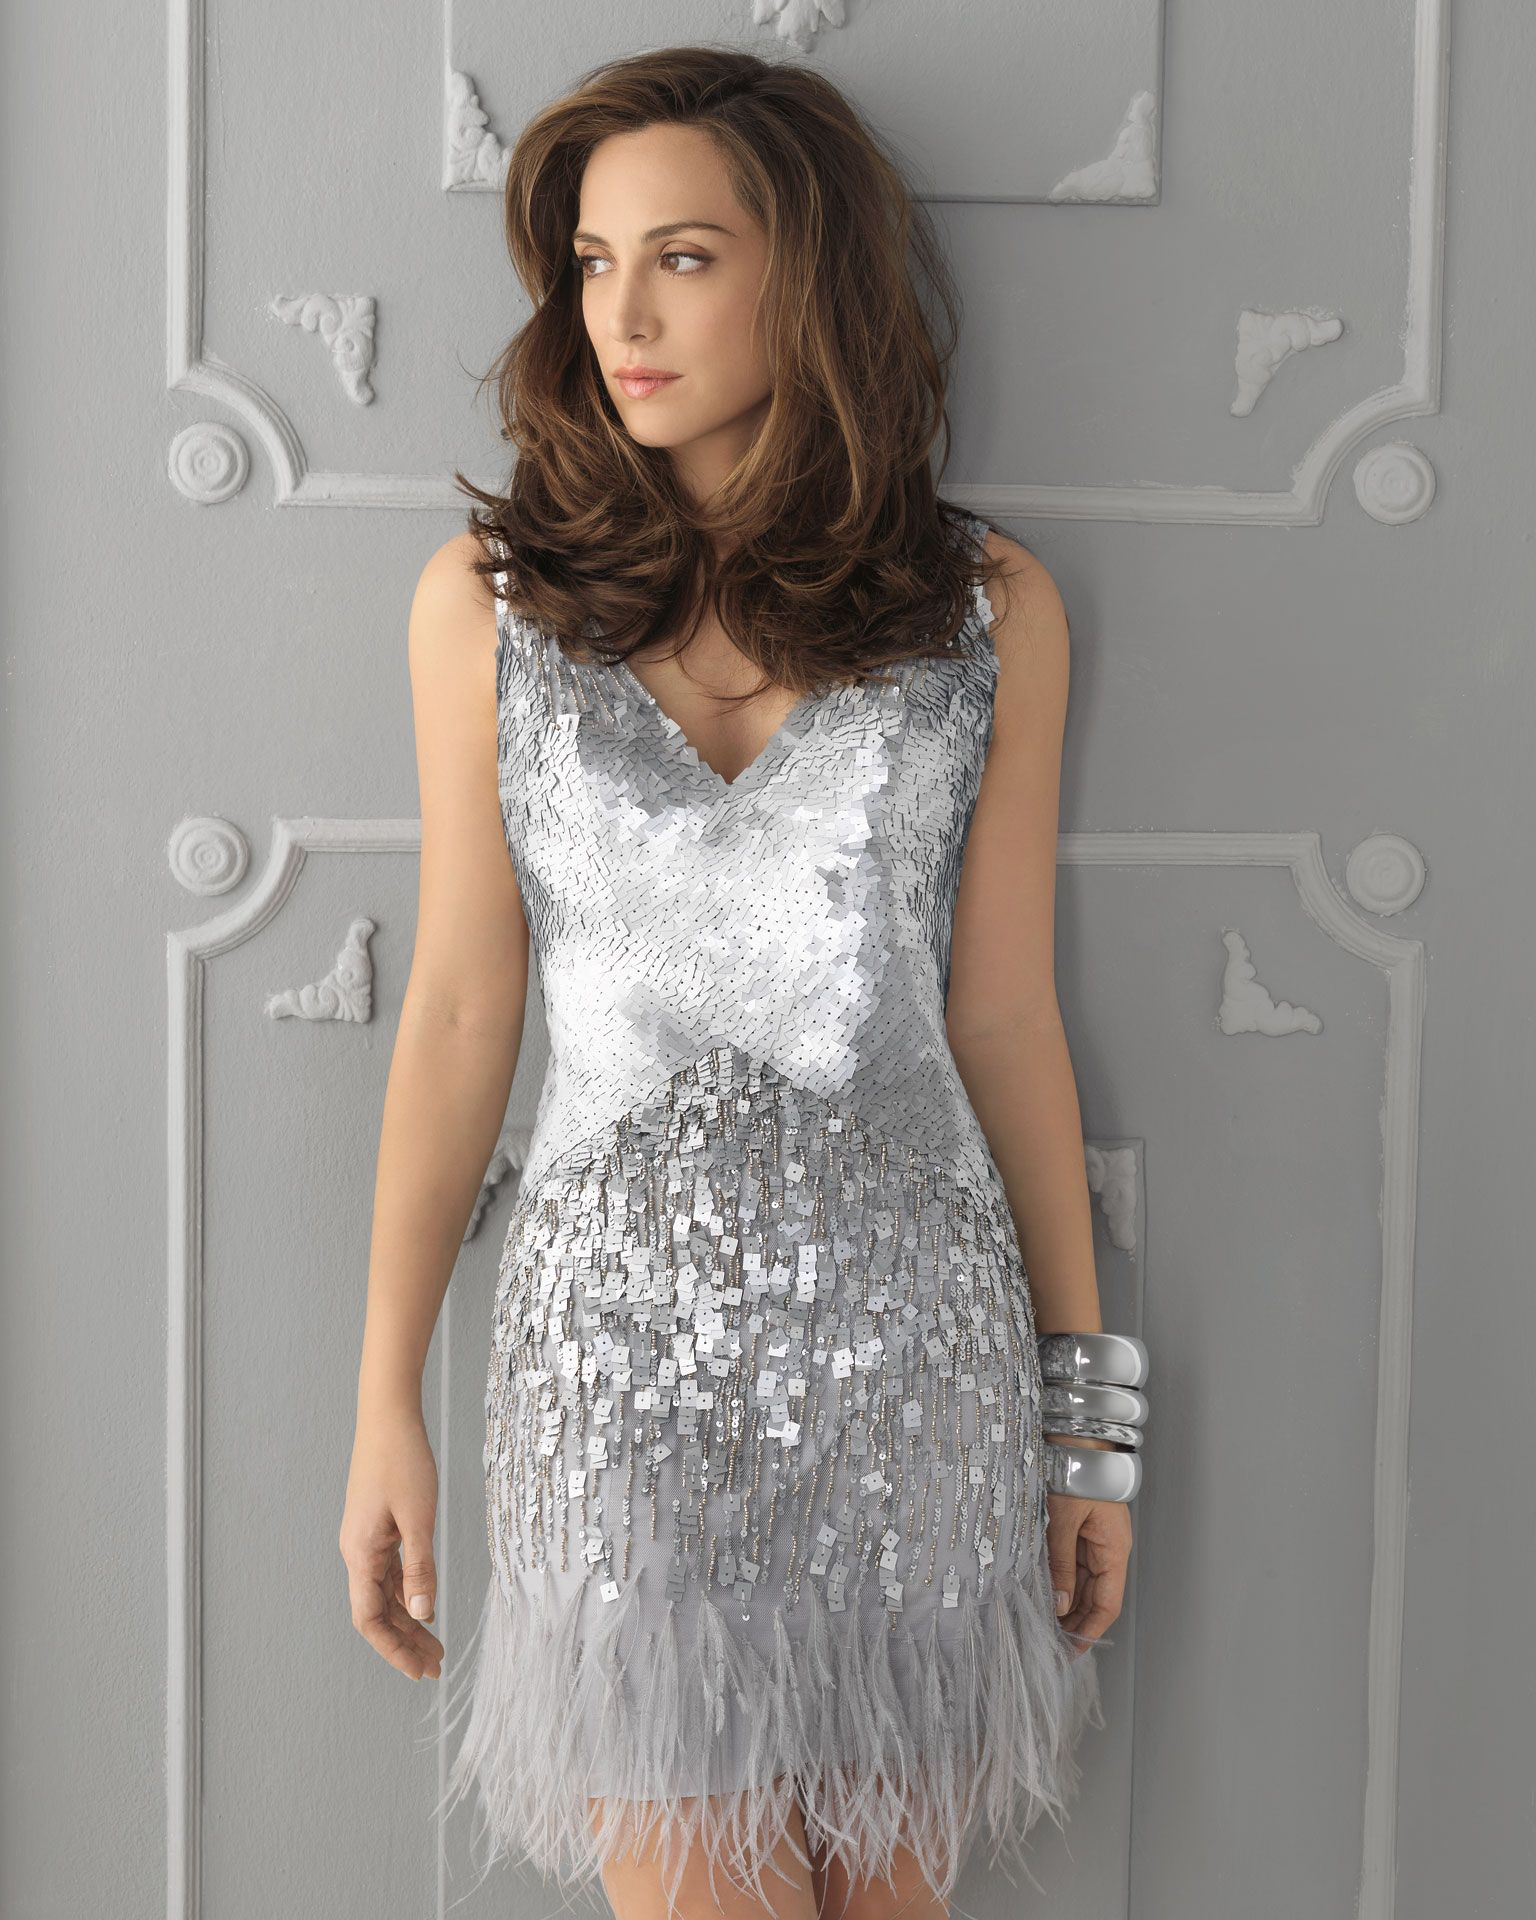 Wedding day guest dresses  Silver sequin feather wedding guest dress  happily ever after